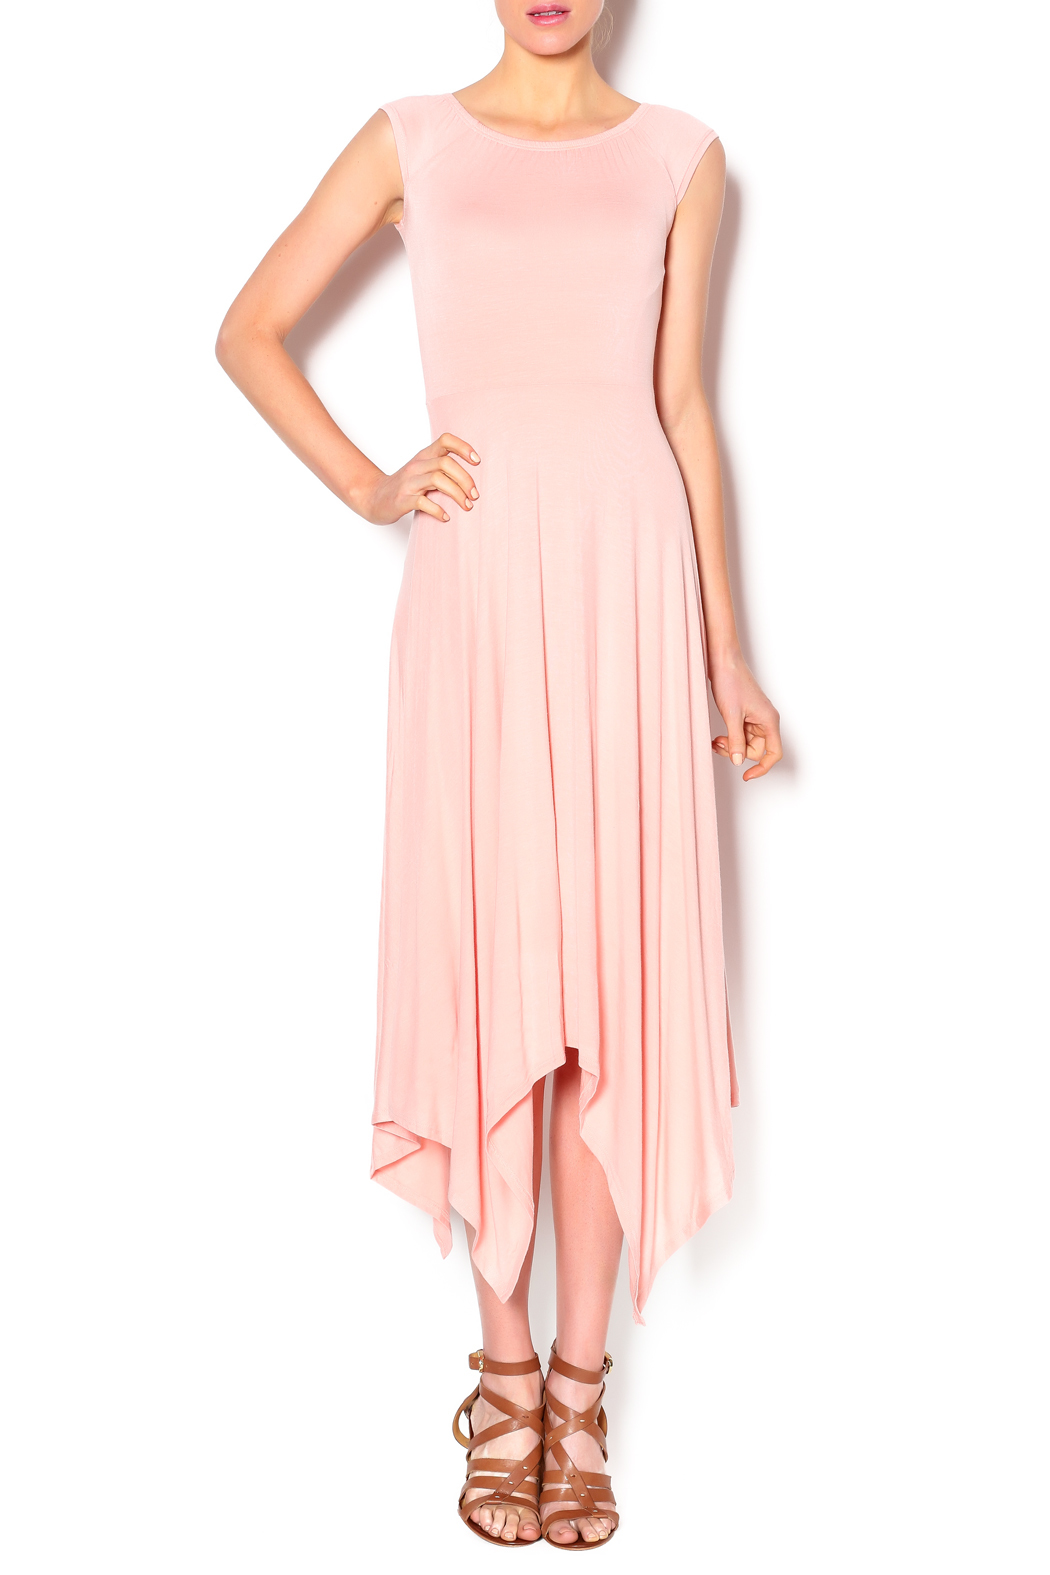 Reborn J Pink Flowy Dress from Arkansas by Vintage Glam and Junque ...